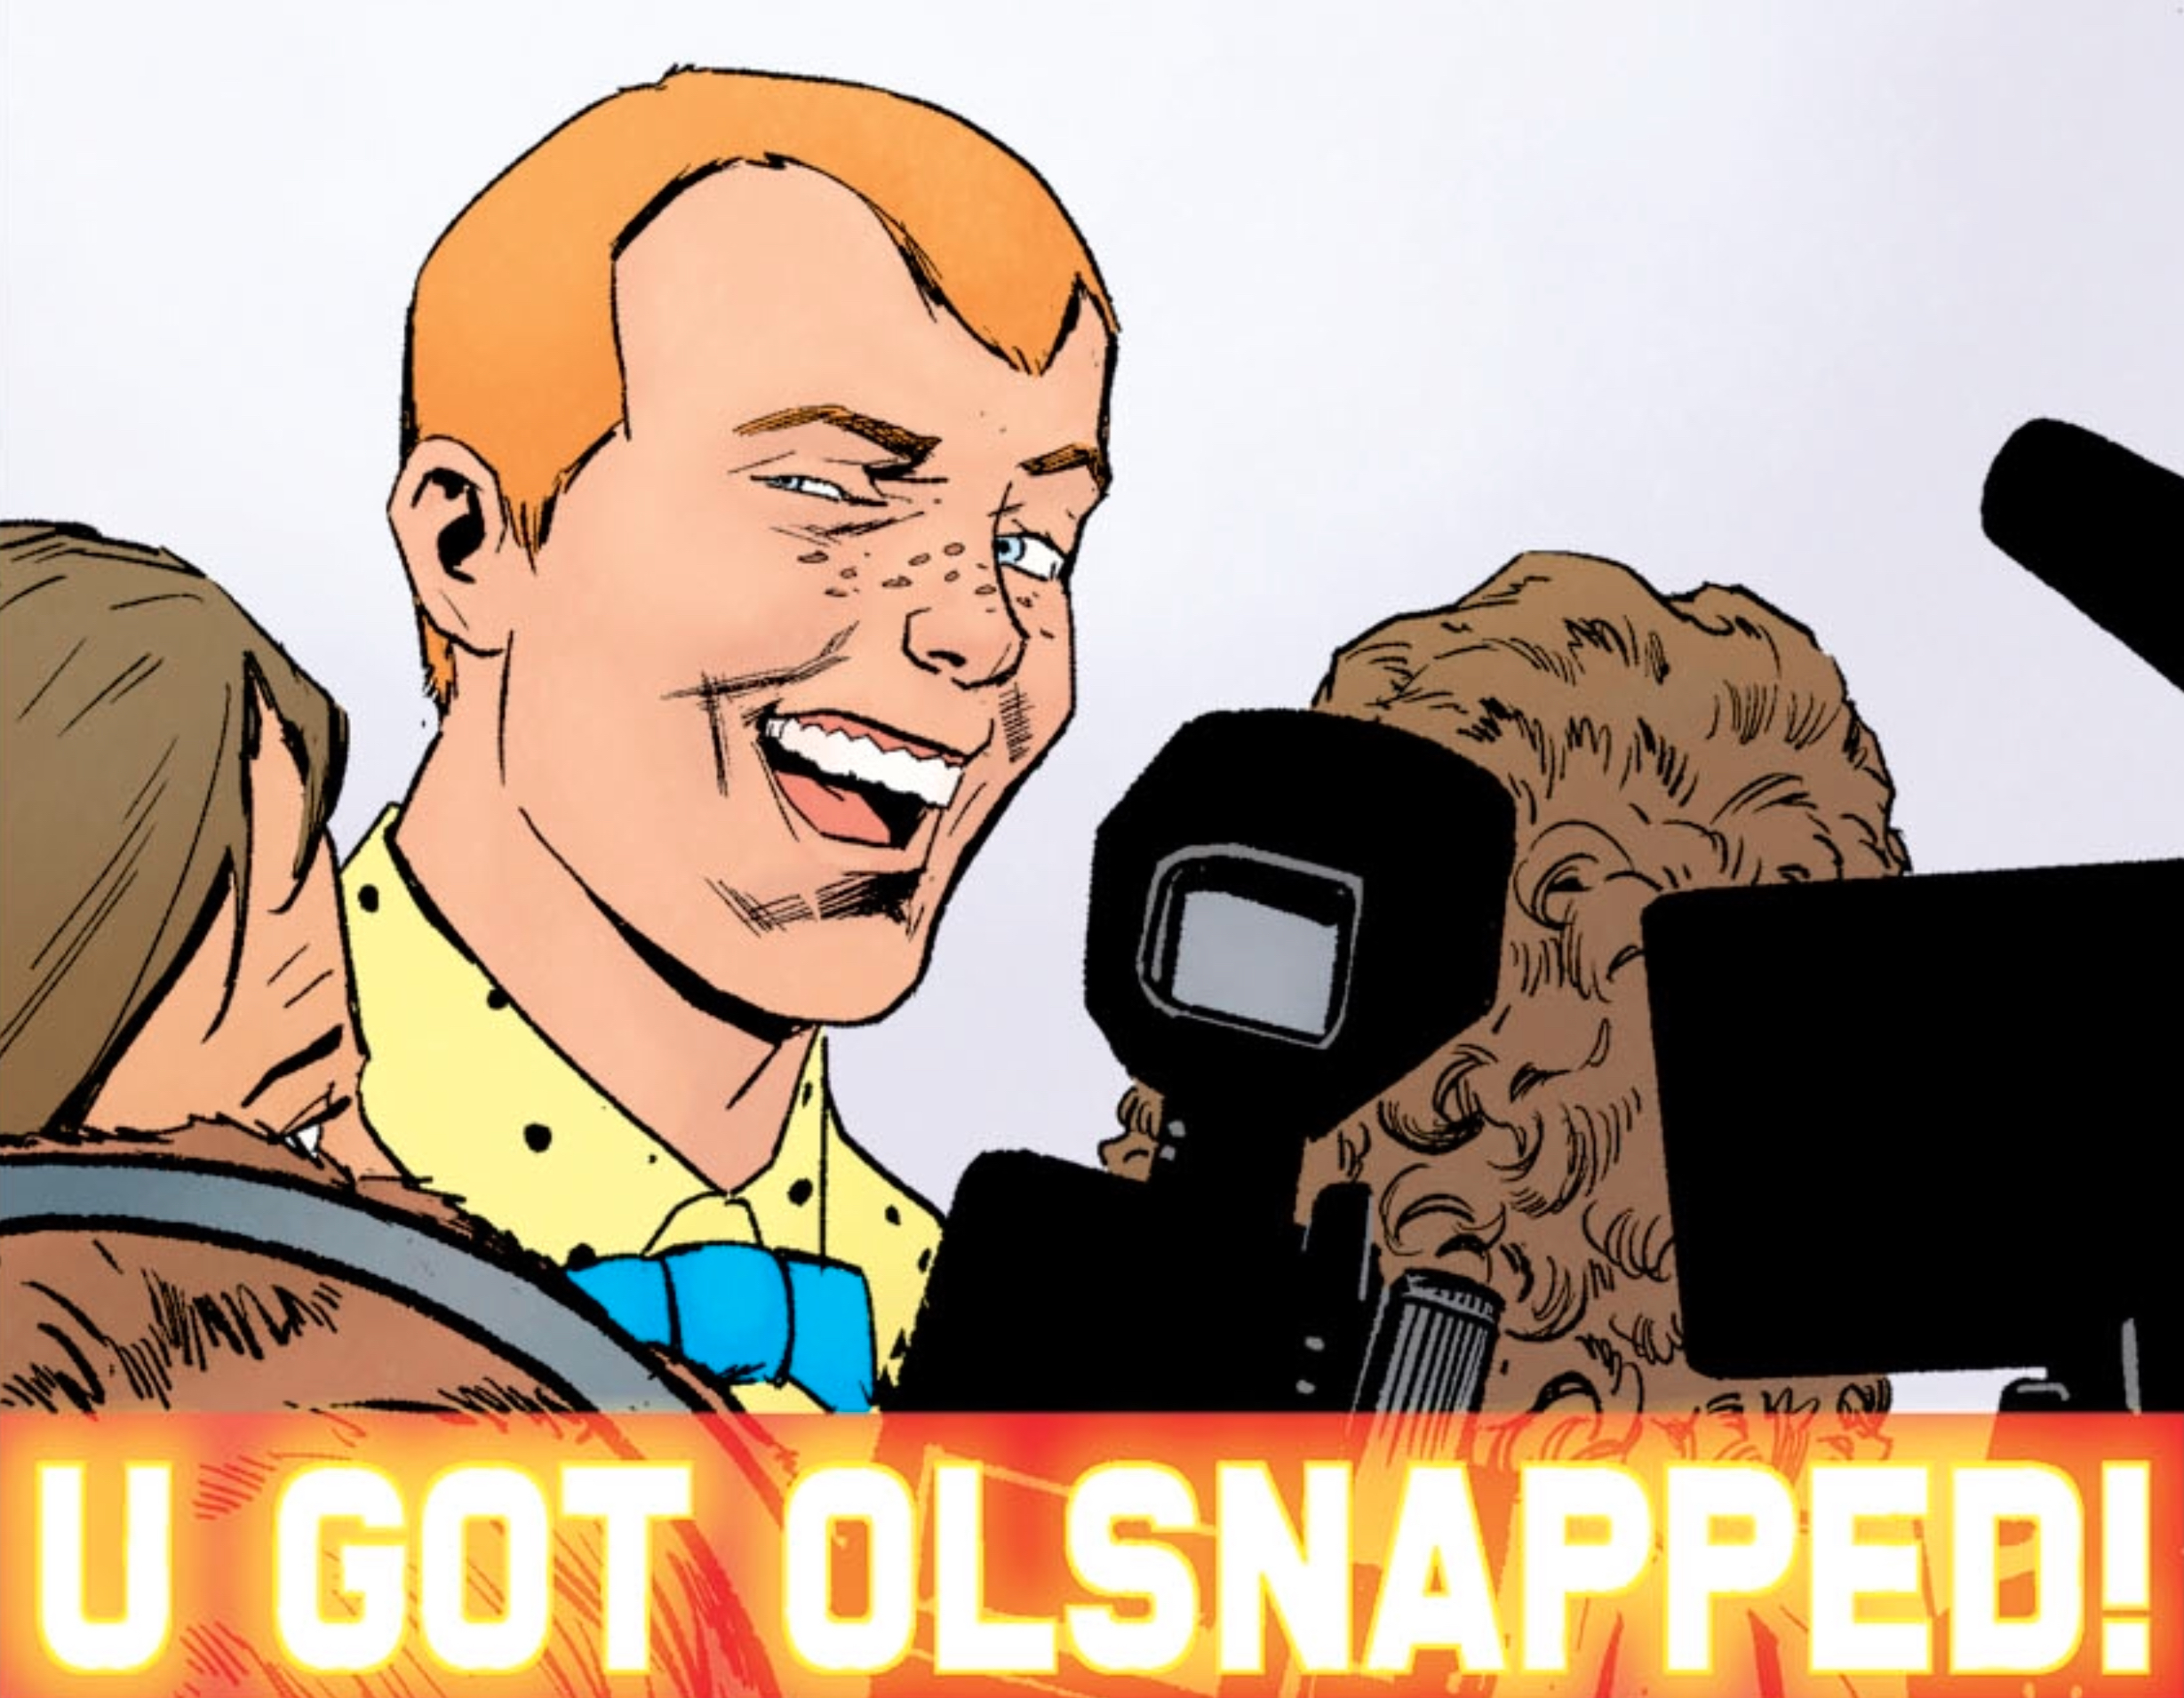 Jimmy Olsen is now the Jake Paul of Gotham City, so Batman punched him